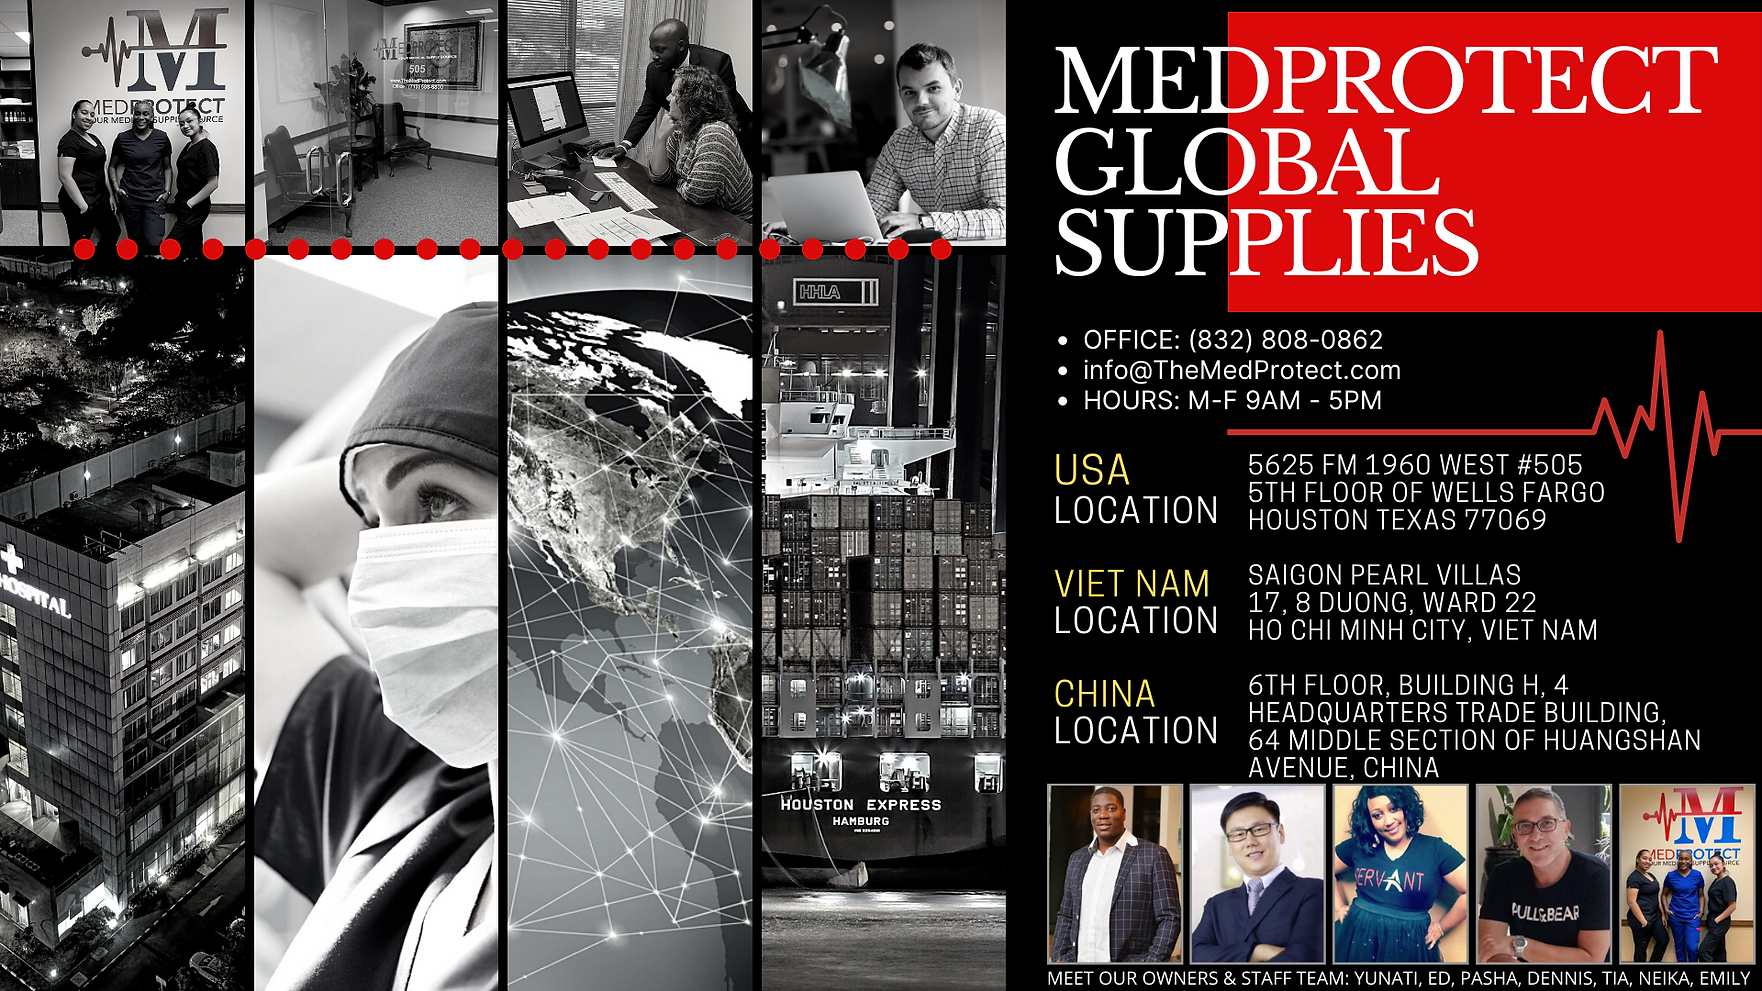 MEDPROTECT GLOBAL SUPPLIES (4).png